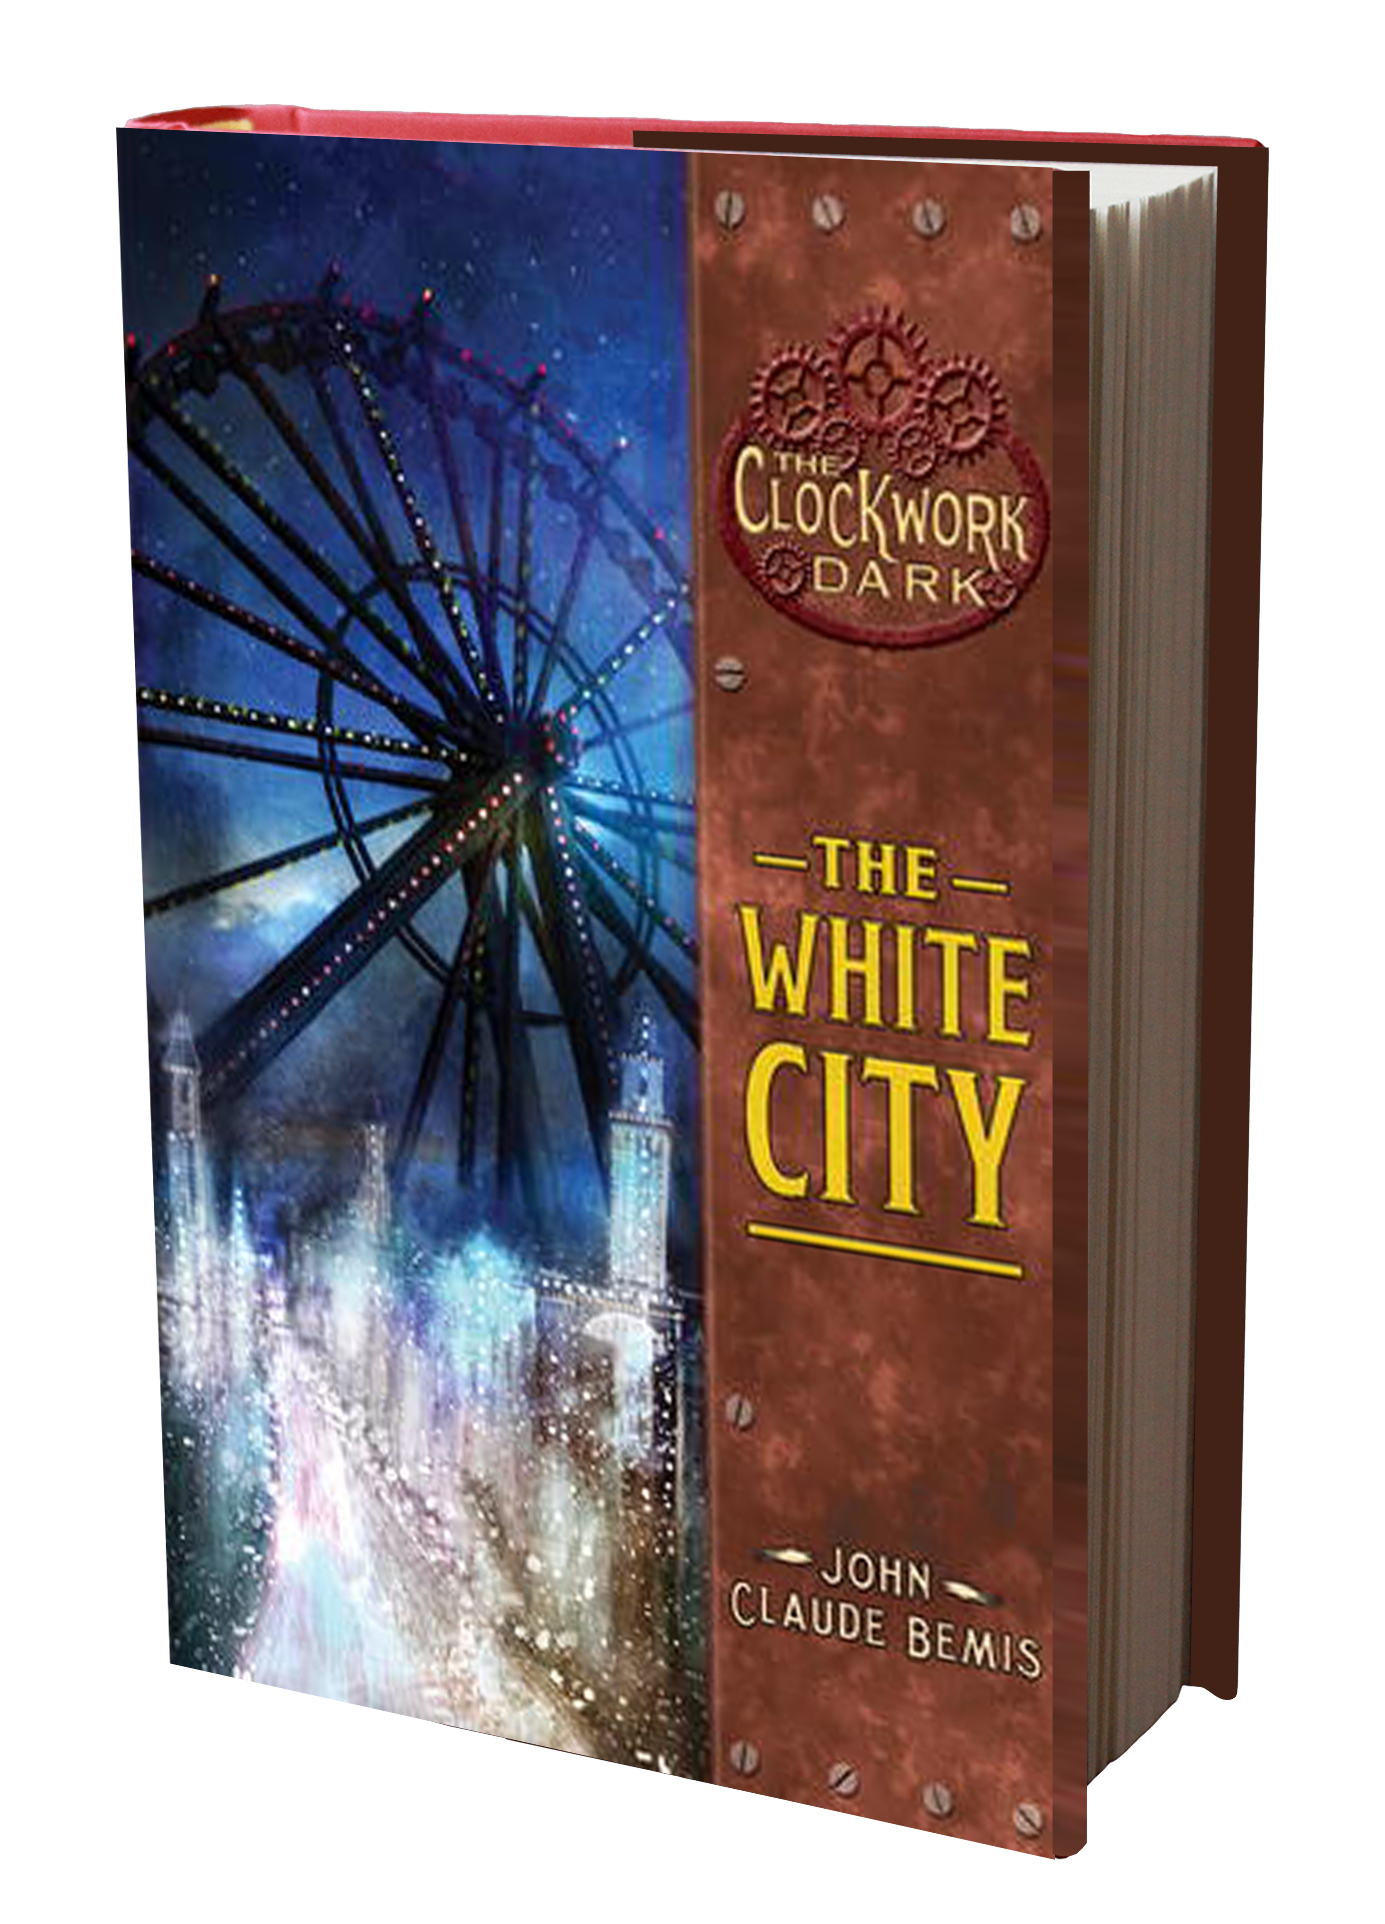 The White City Book 3 in the Clockwork Dark trilogy